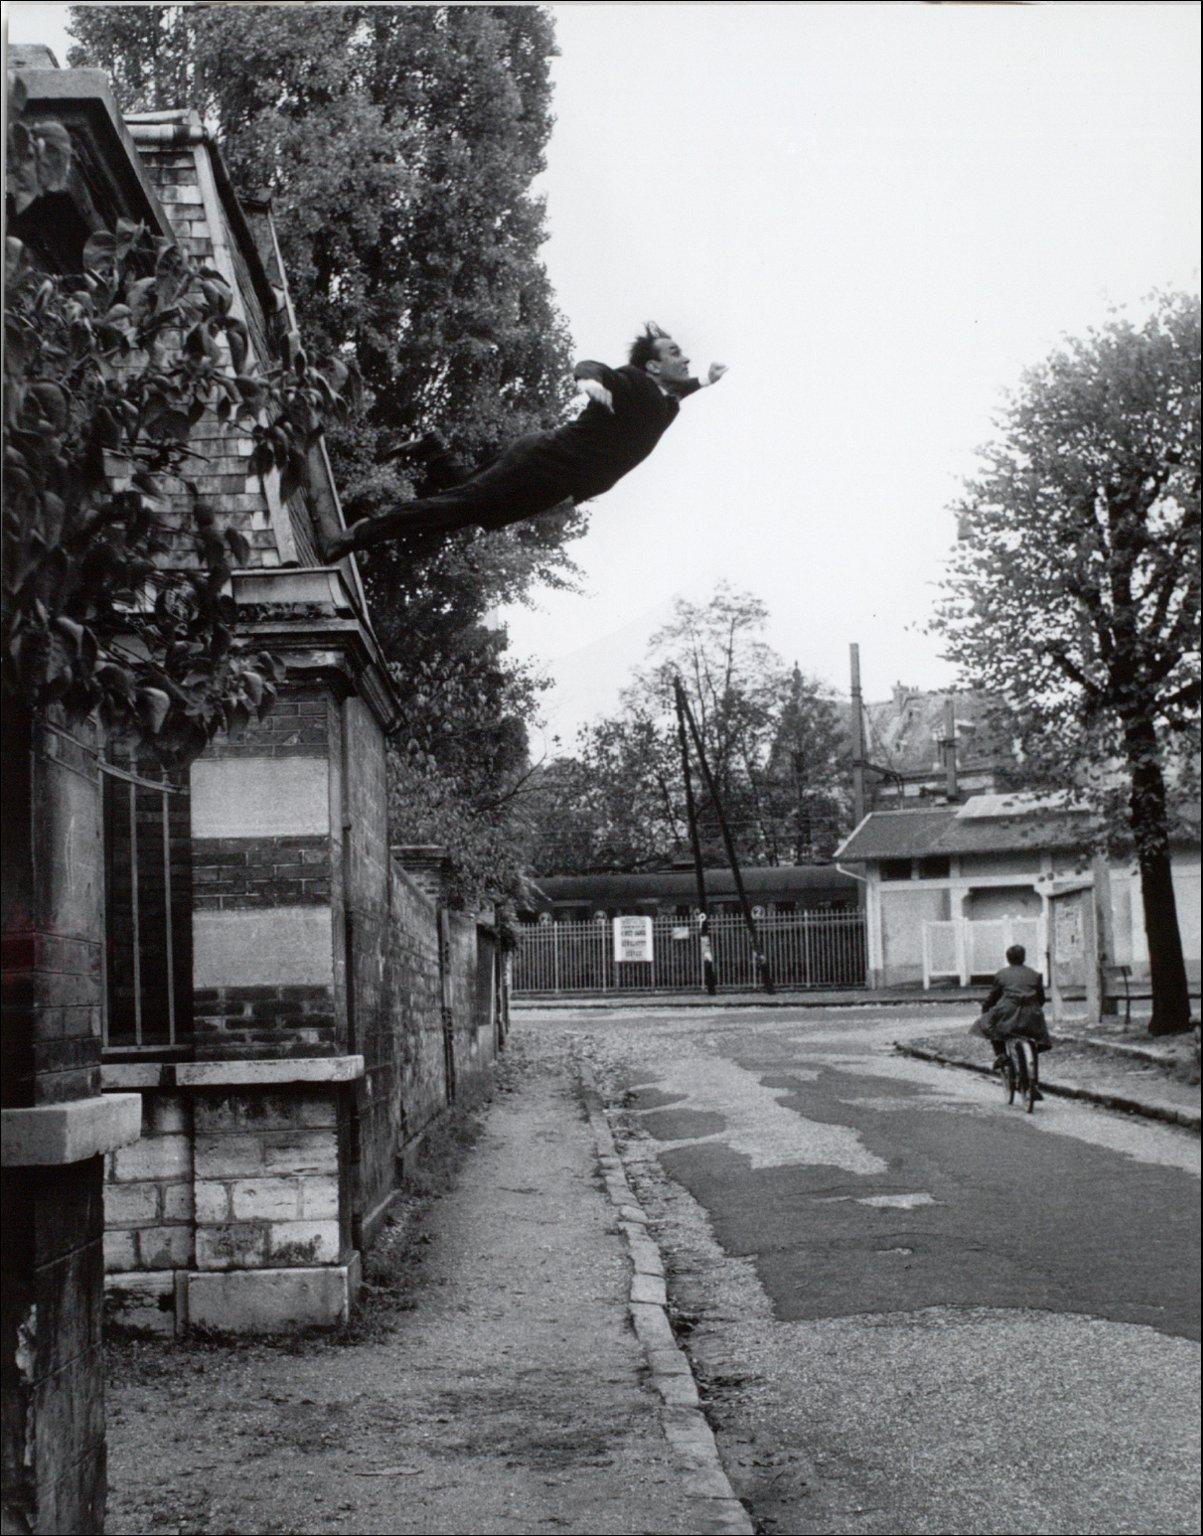 harry-shunk-yves-klein-saut-dan-le-vide-paris-1960-painting-artwork-print.jpg